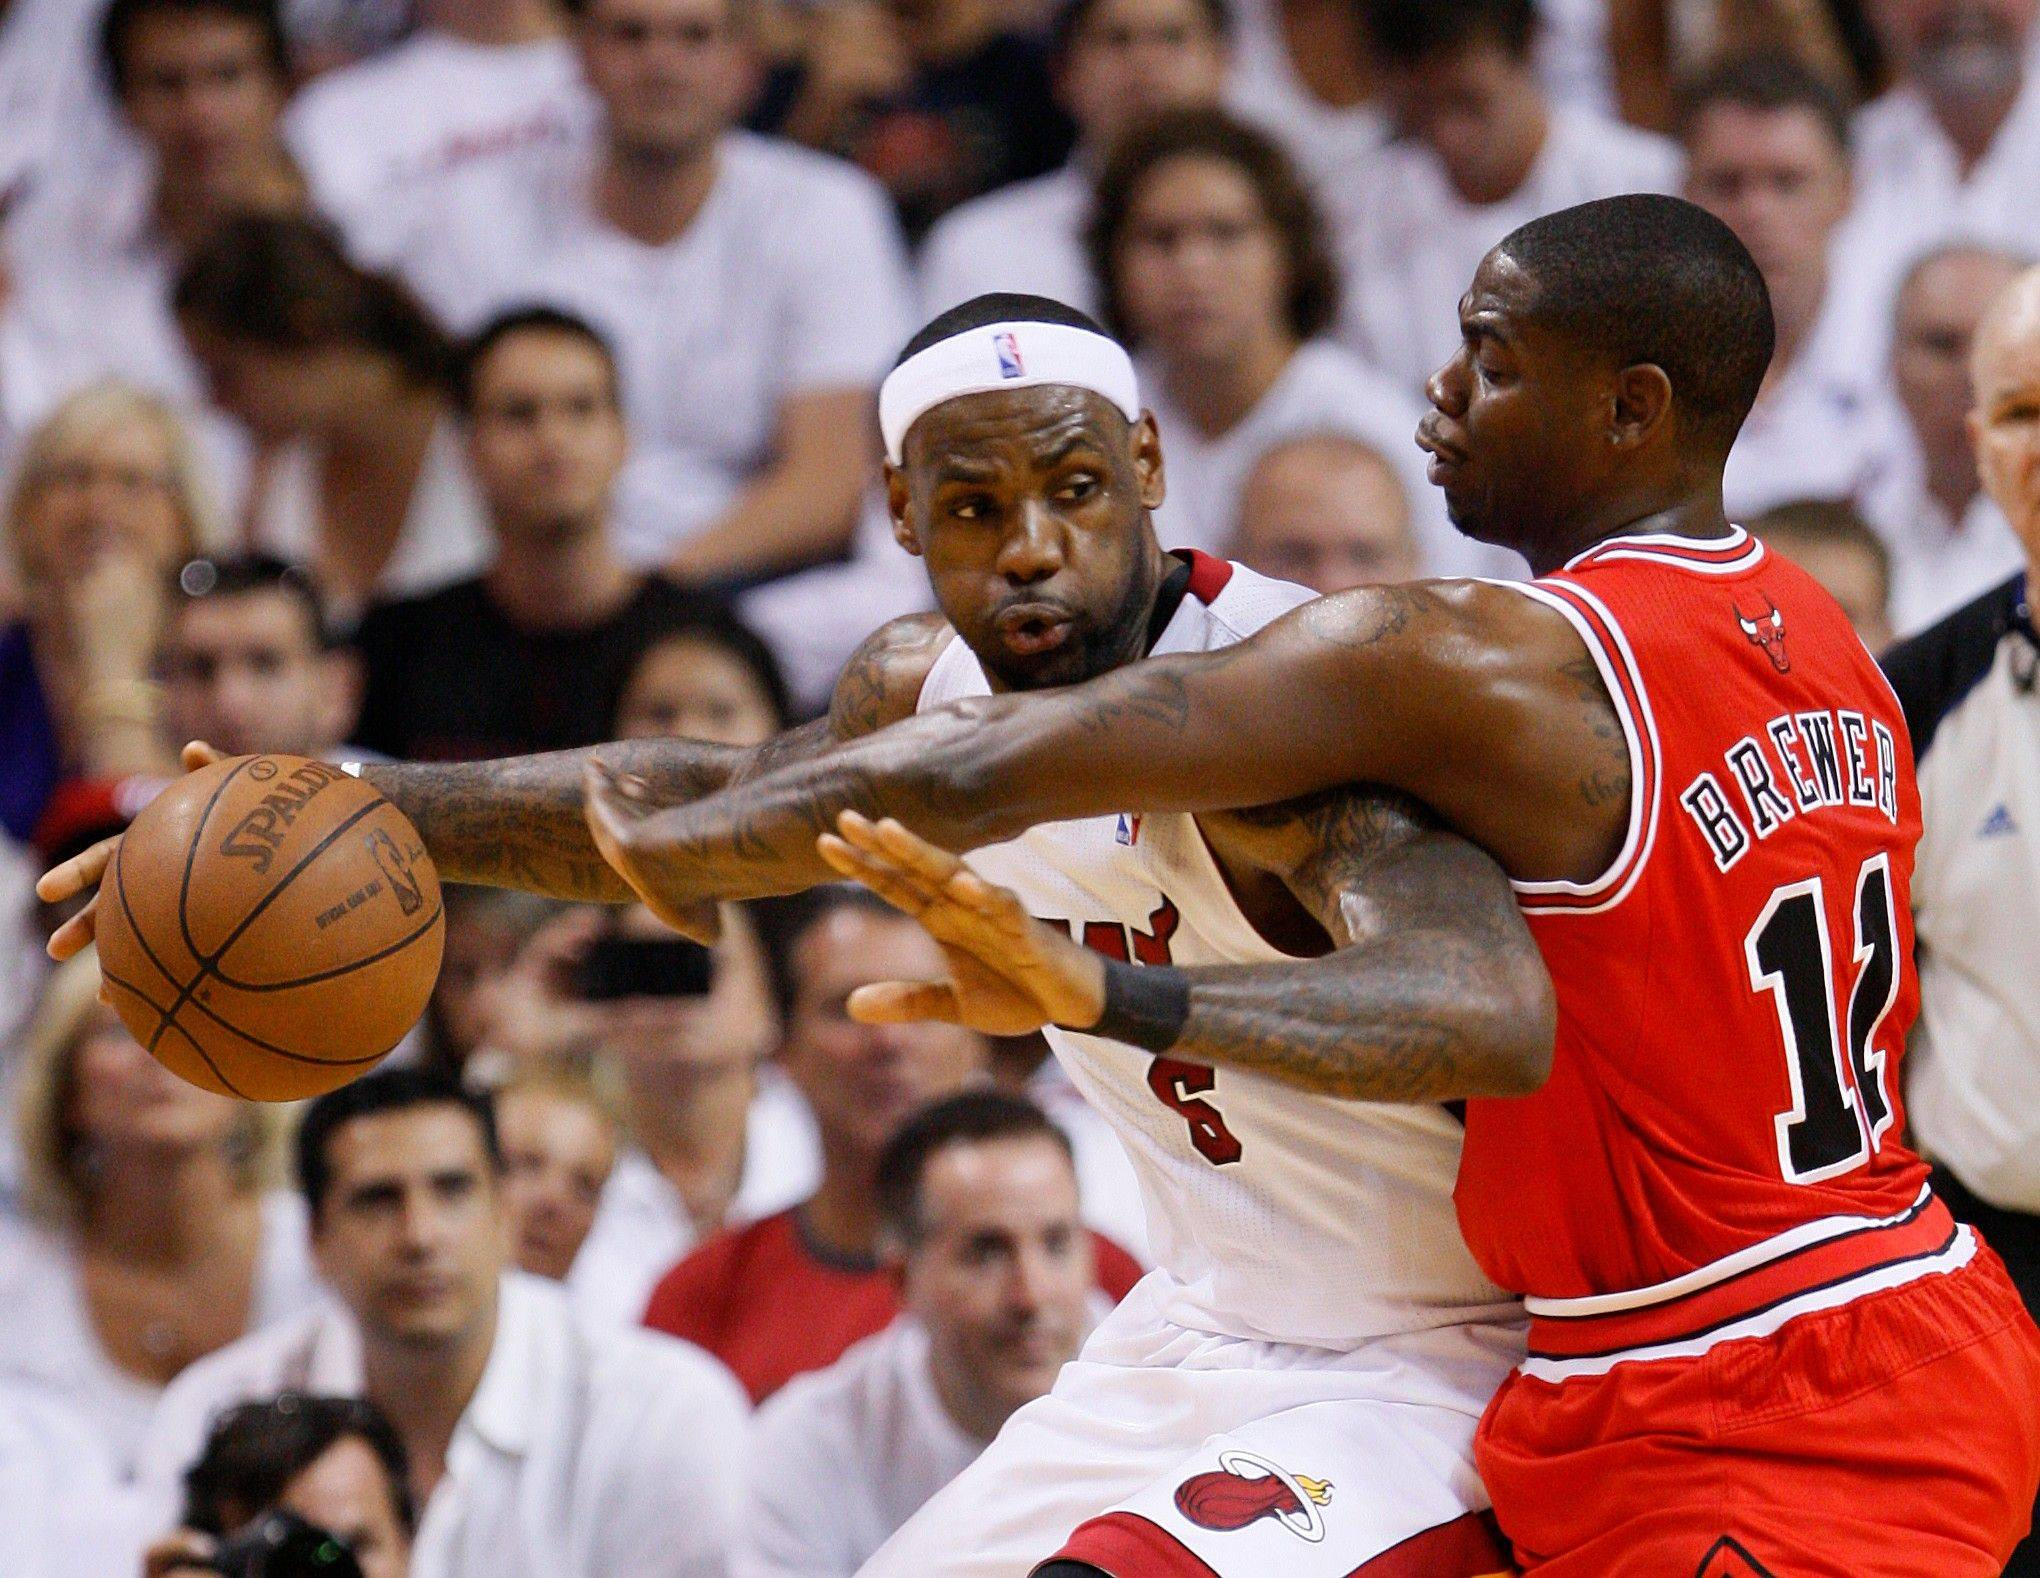 Miami Heat's LeBron James, left, drives up against Chicago Bulls' Ronnie Brewer during the first half of Game 4 of the NBA Eastern Conference finals basketball series in Miami, Tuesday, May 24, 2011.